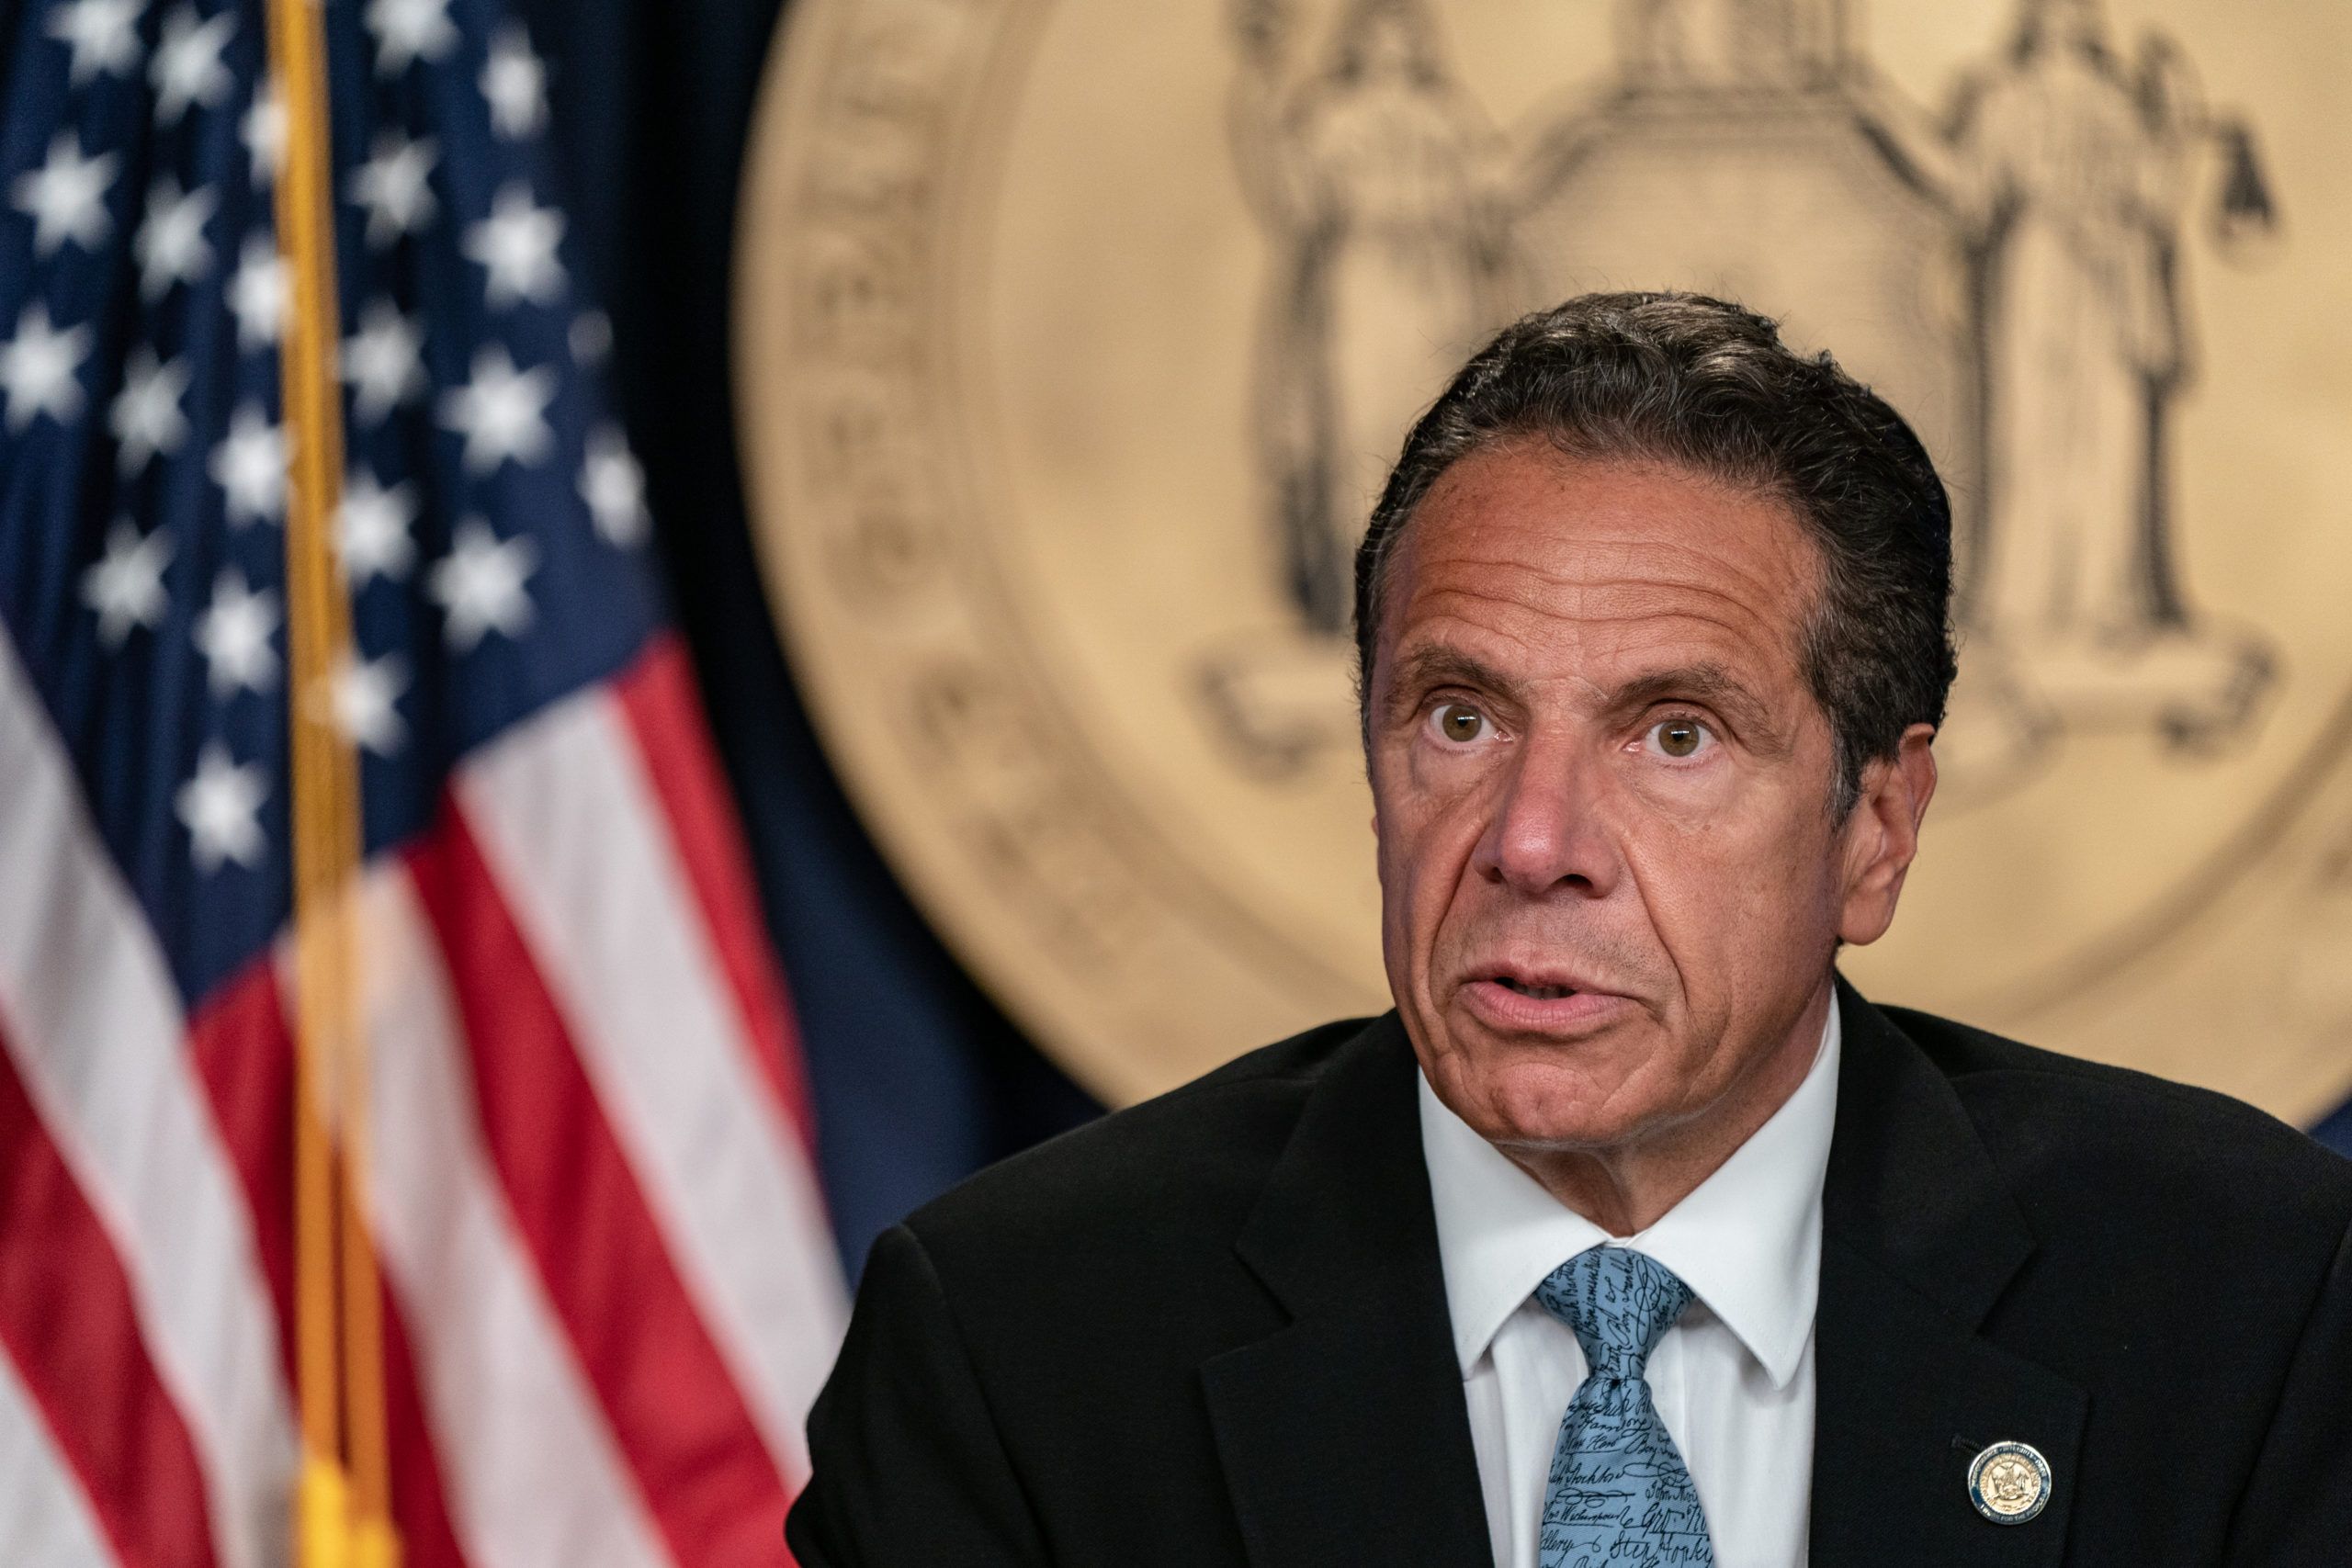 New York Gov. Andrew Cuomo speaks during the daily media briefing at the Office of the Governor of the State of New York on July 23, 2020 in New York City. The Governor said the state liquor authority has suspended 27 bar and restaurant alcohol licenses for violations of social distancing rules as public officials try to keep the coronavirus outbreak under control. (Photo by Jeenah Moon/Getty Images)